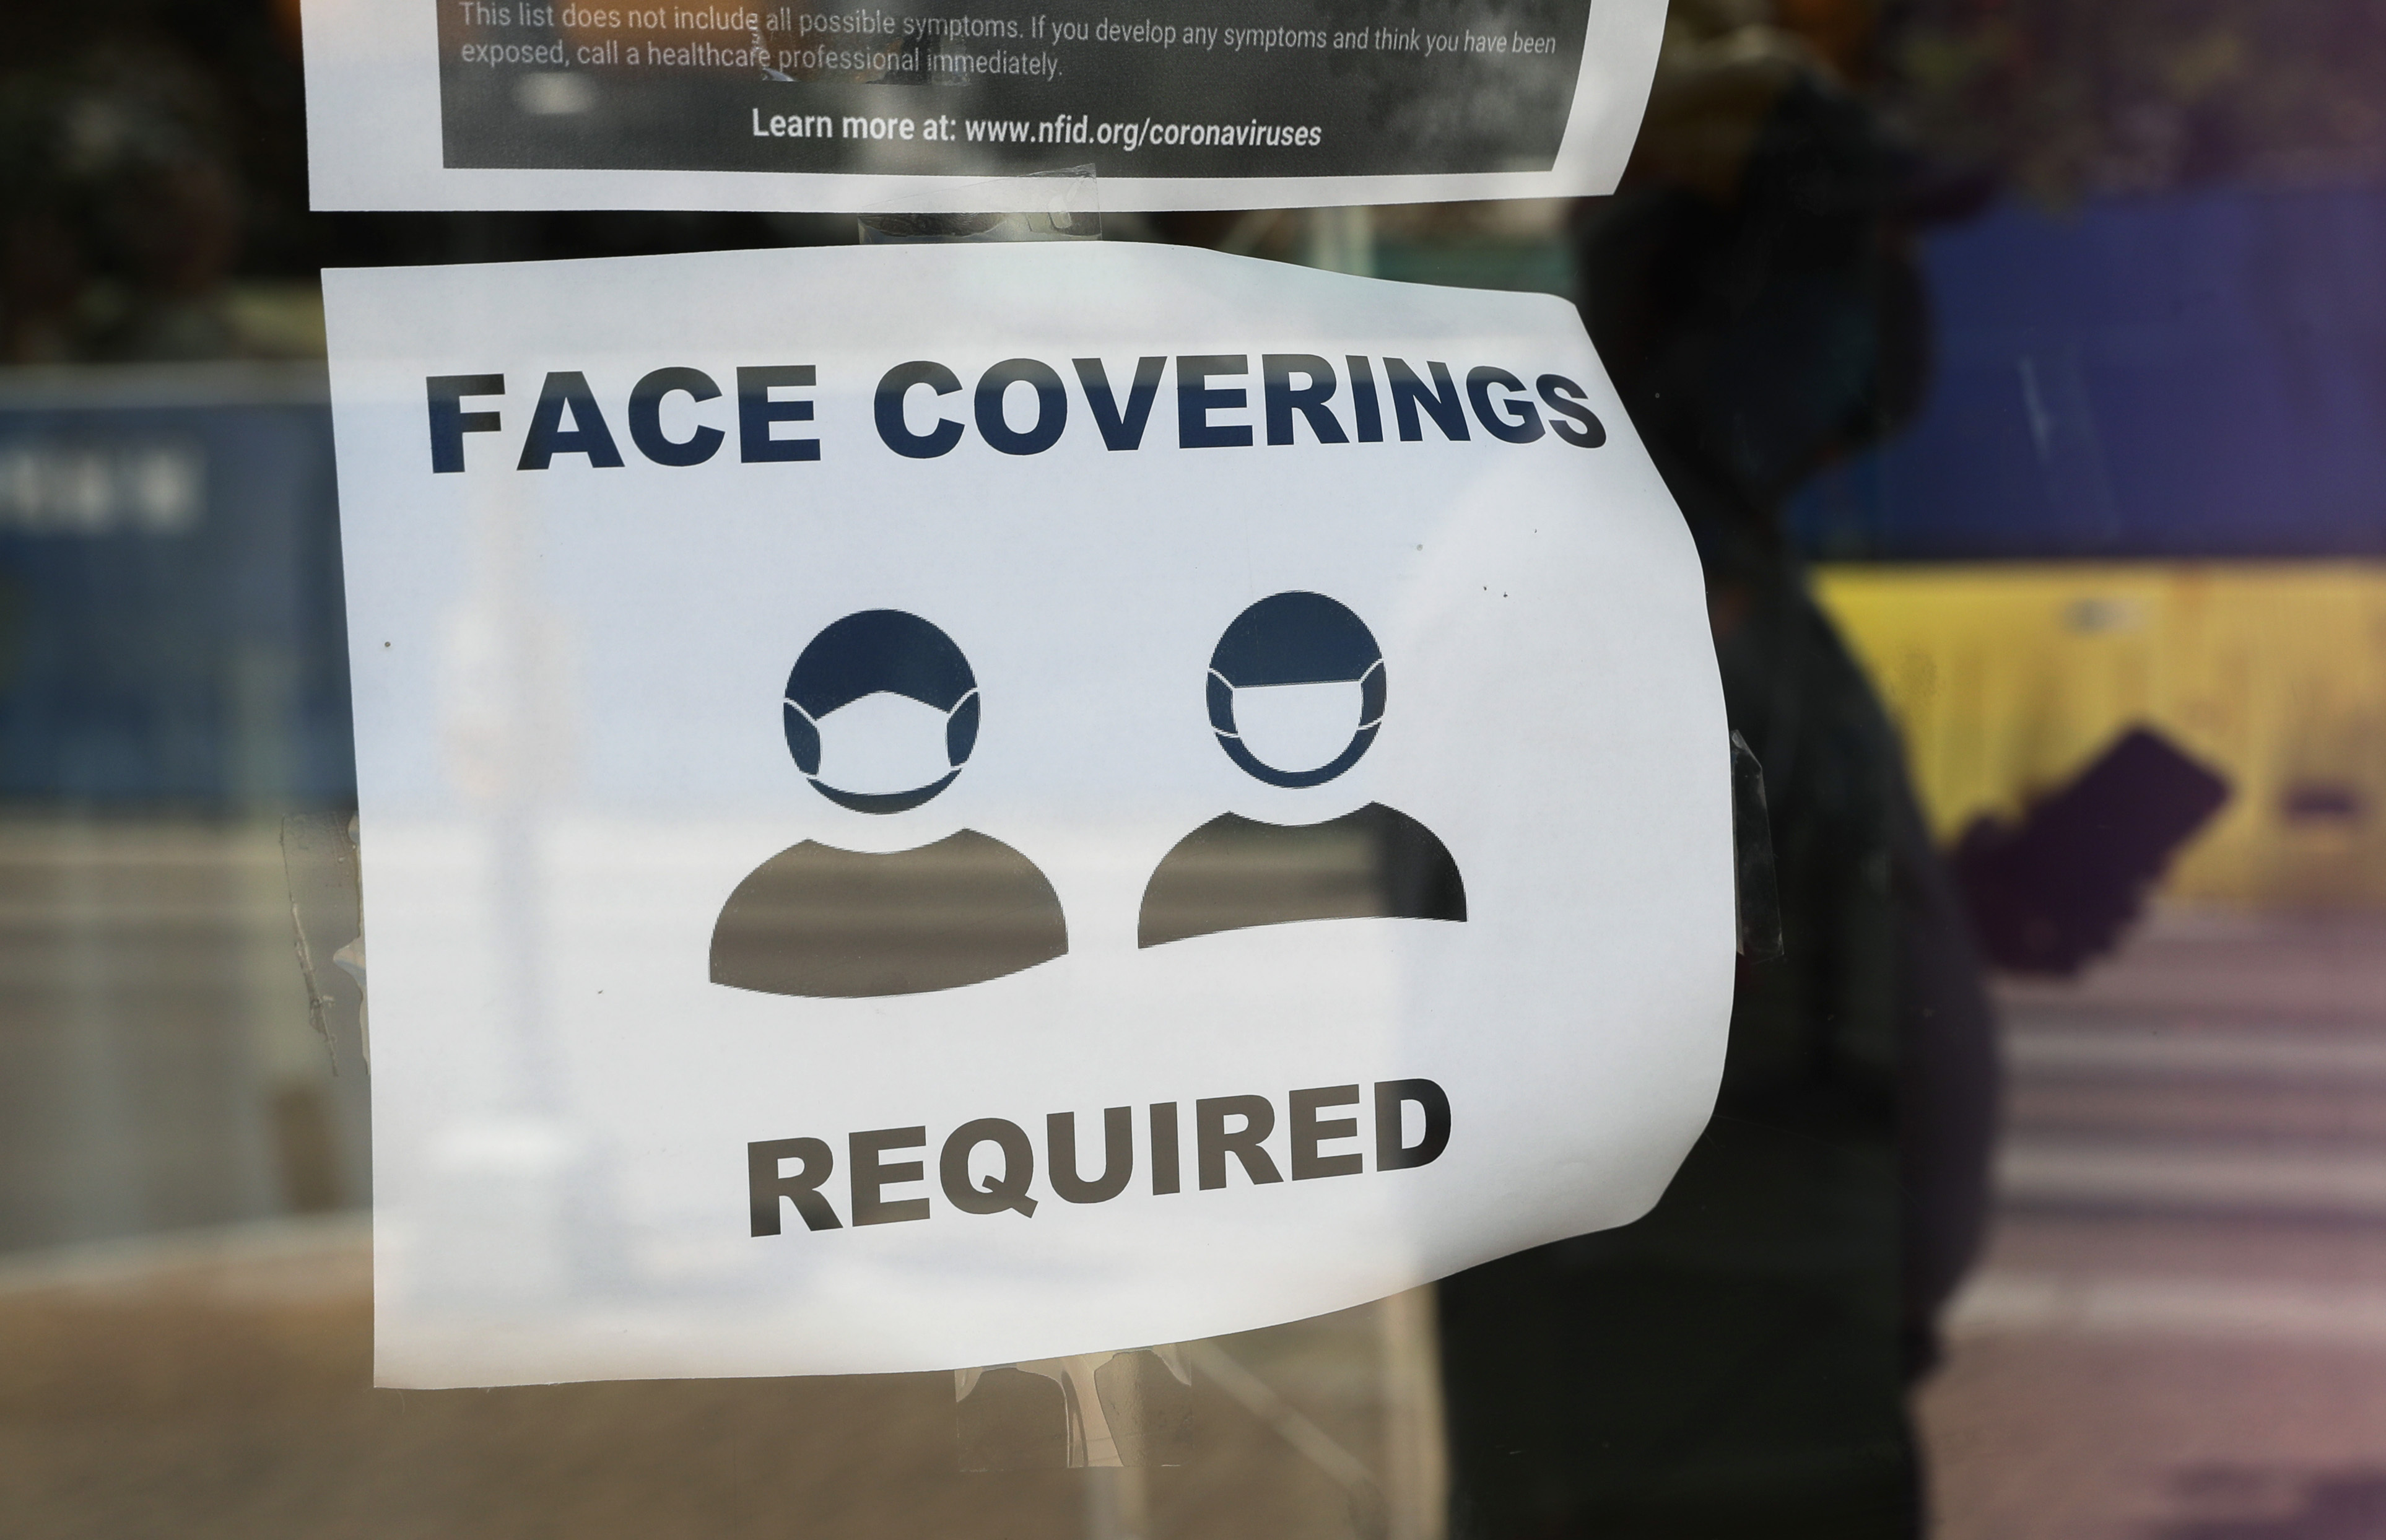 Texas Gov. Abbott issues new order barring local officials from mandating masks